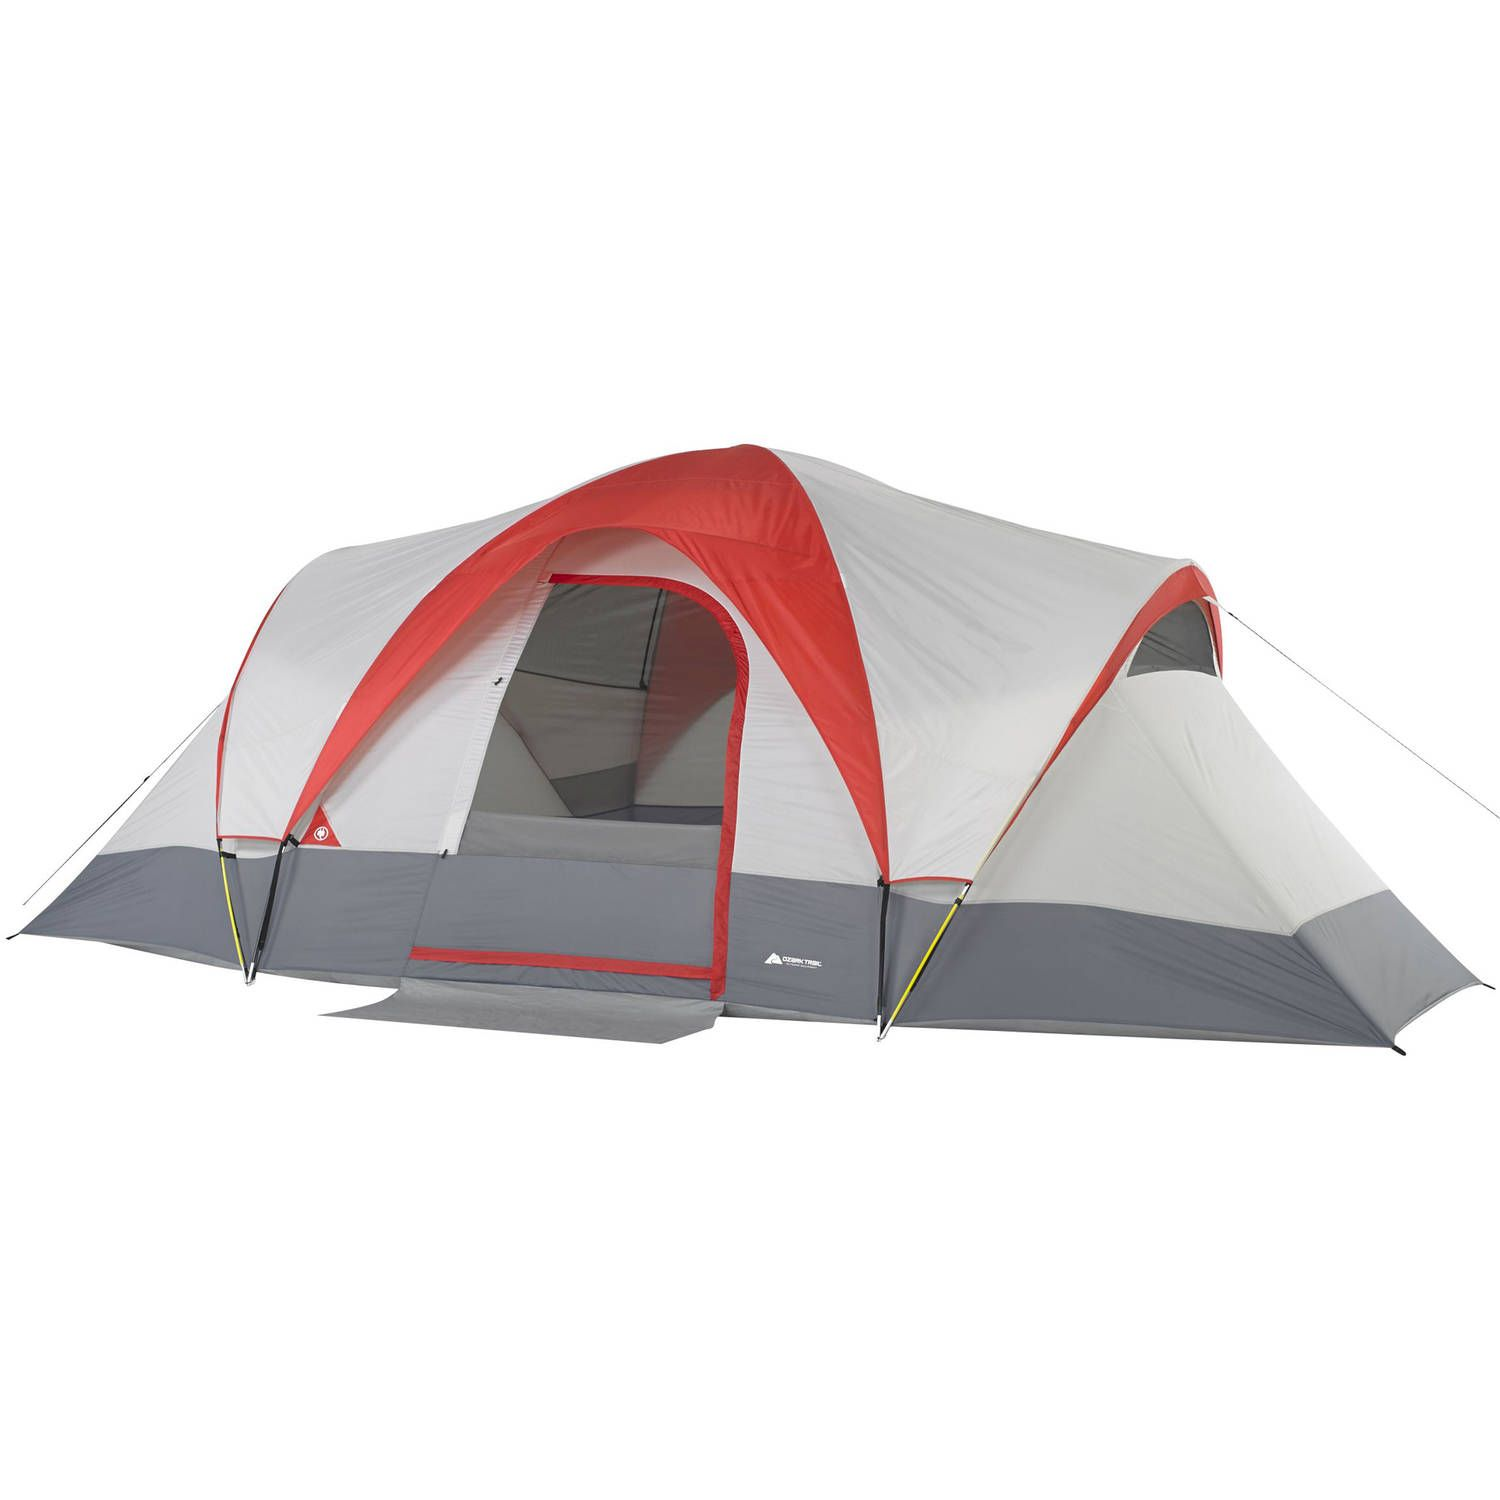 Ozark Trail 9 Person Weatherbuster Dome Tent With Built In Mud Mat Walmart Com Family Tent Camping Best Tents For Camping Dome Tent